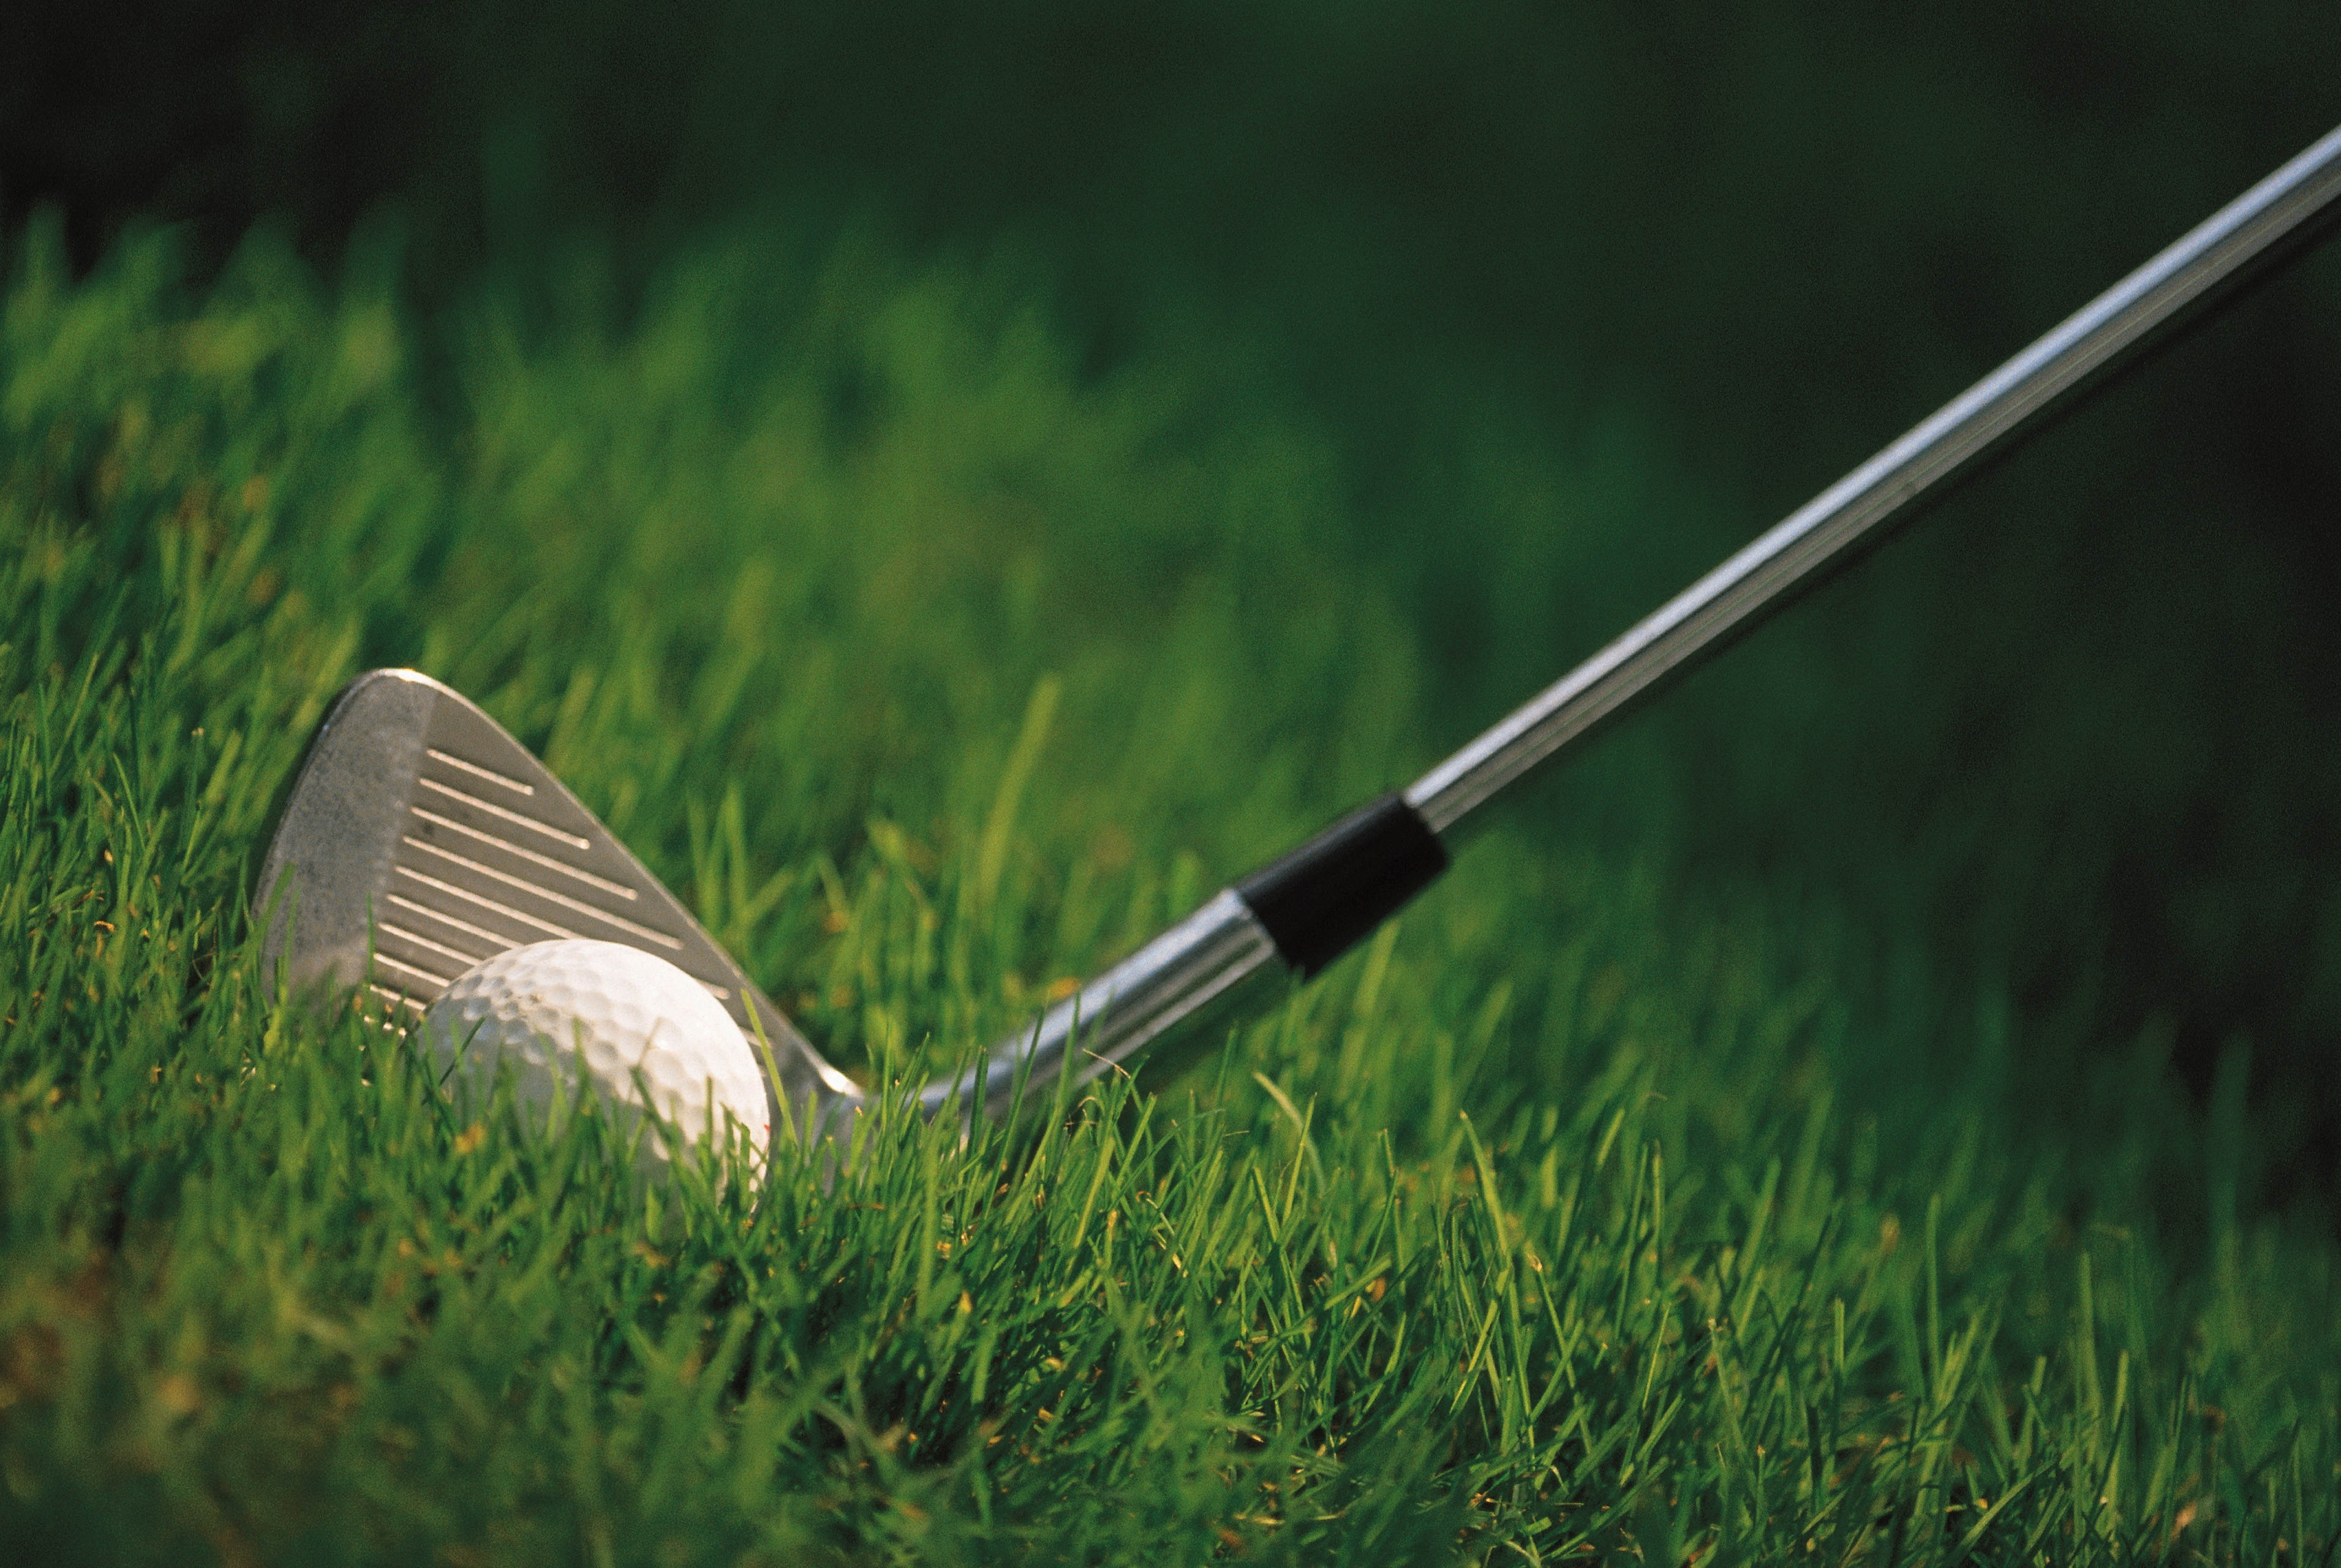 119744 download wallpaper Sports, Grass, Golf, Ball, Hockey Stick screensavers and pictures for free